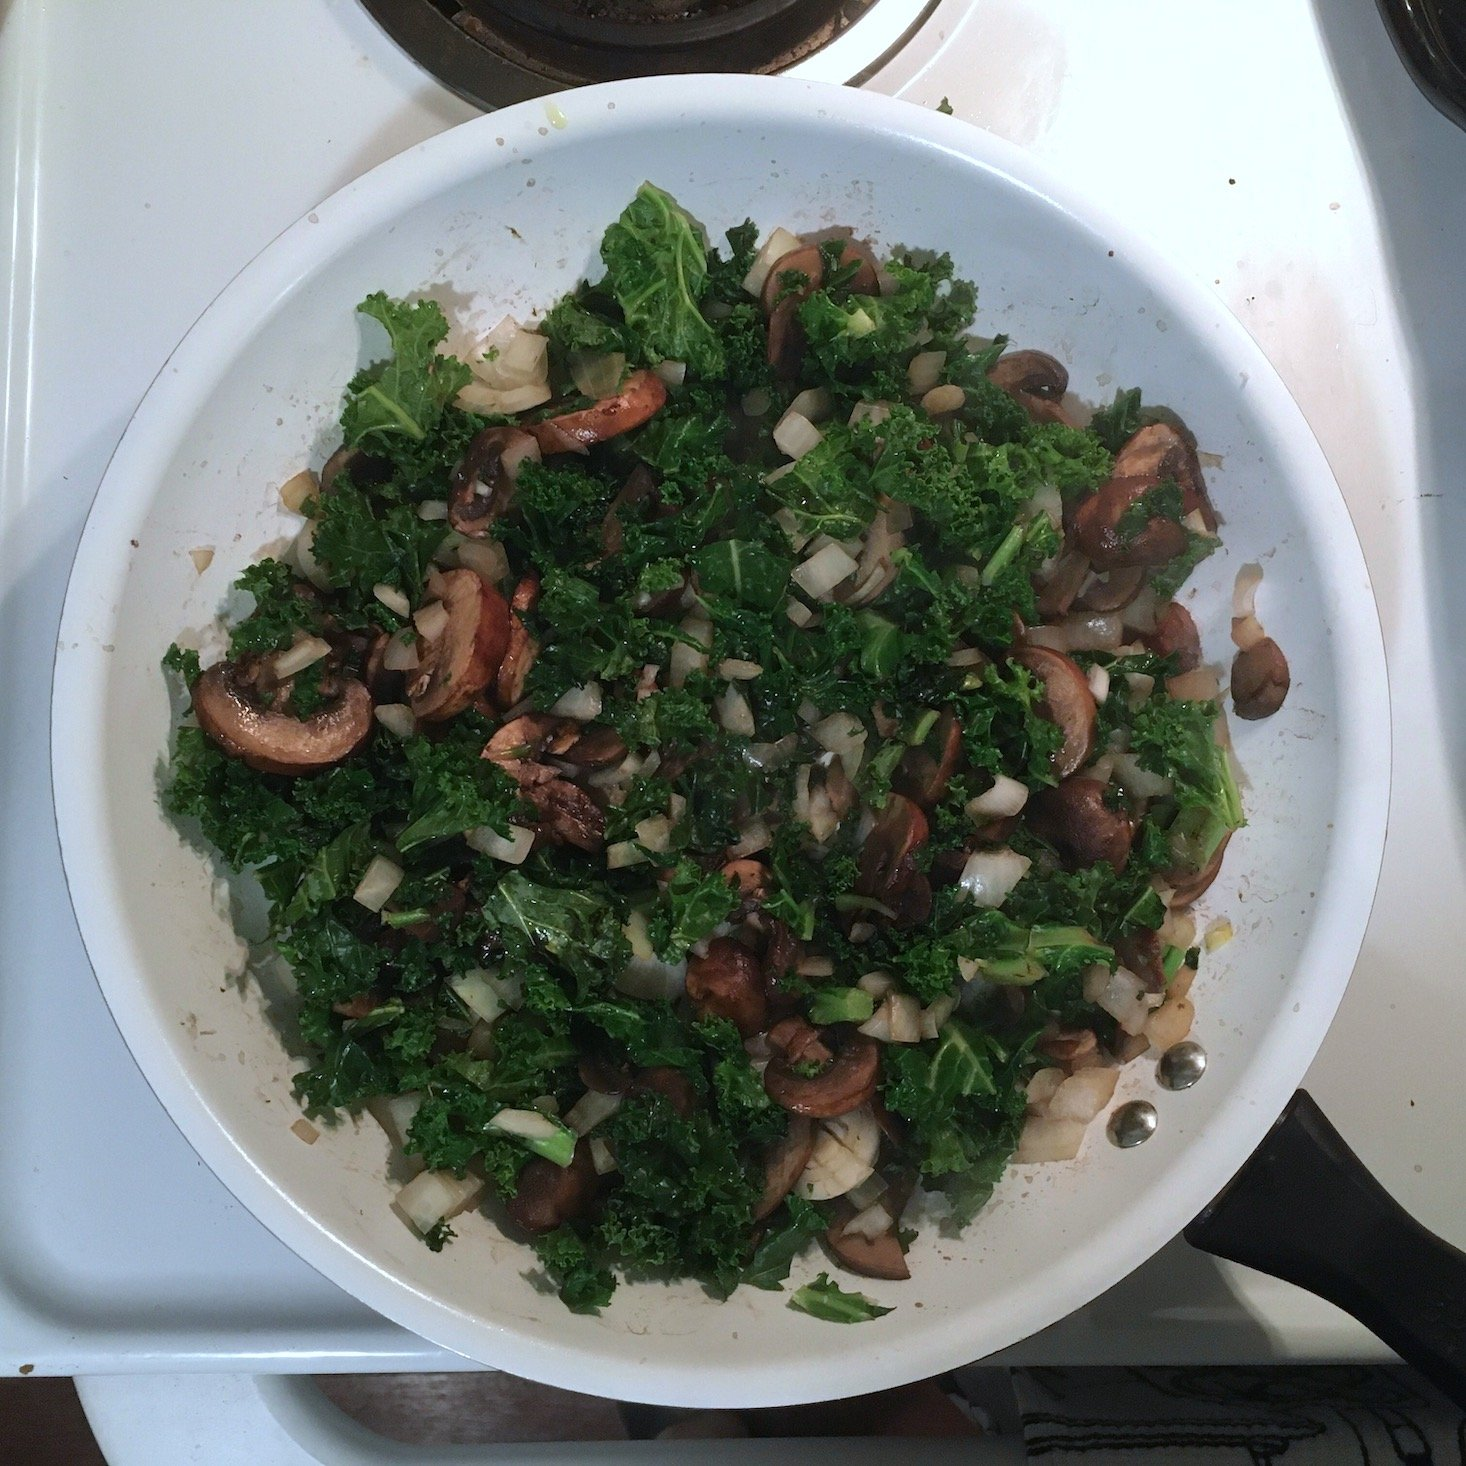 Home Chef February 2020 - mushroom and kale pie mushrooms and kale in pan